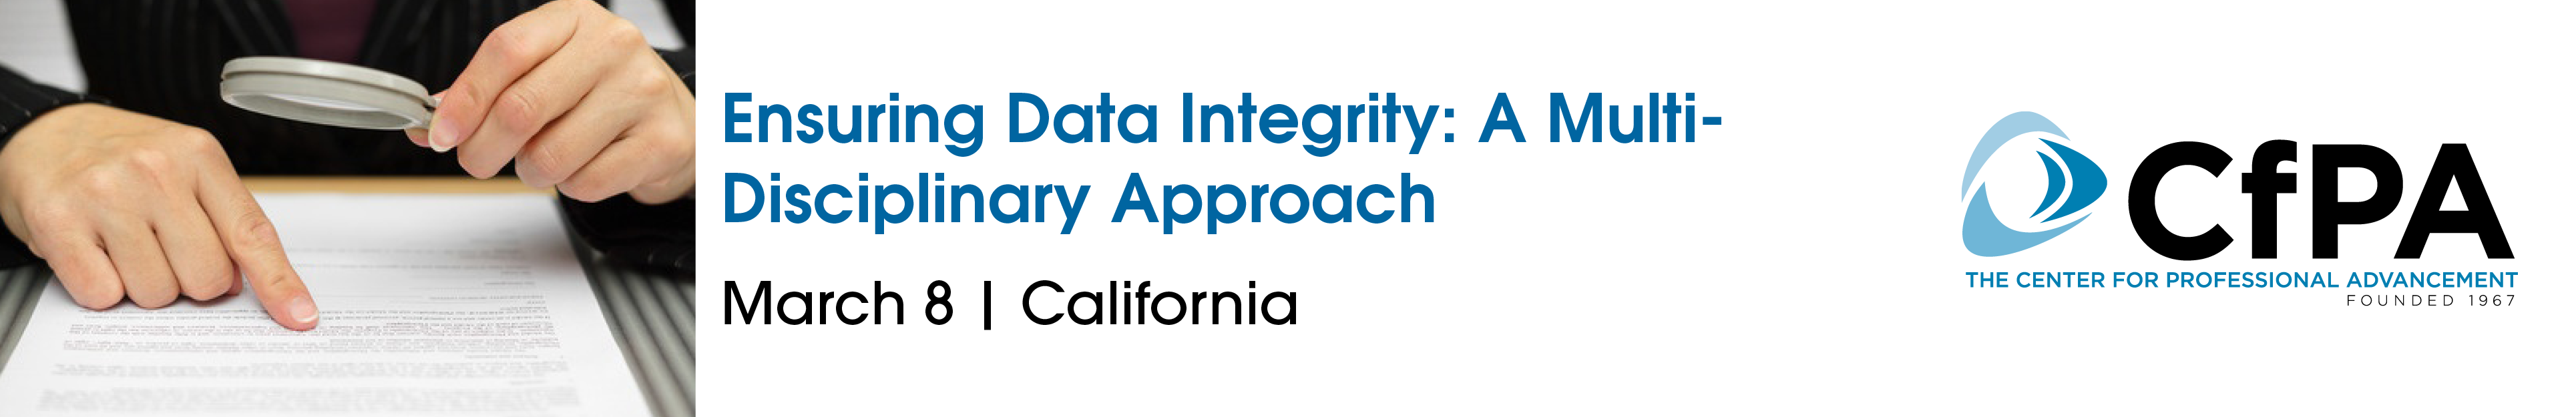 Ensuring Data Integrity: A Multi-Disciplinary Approach